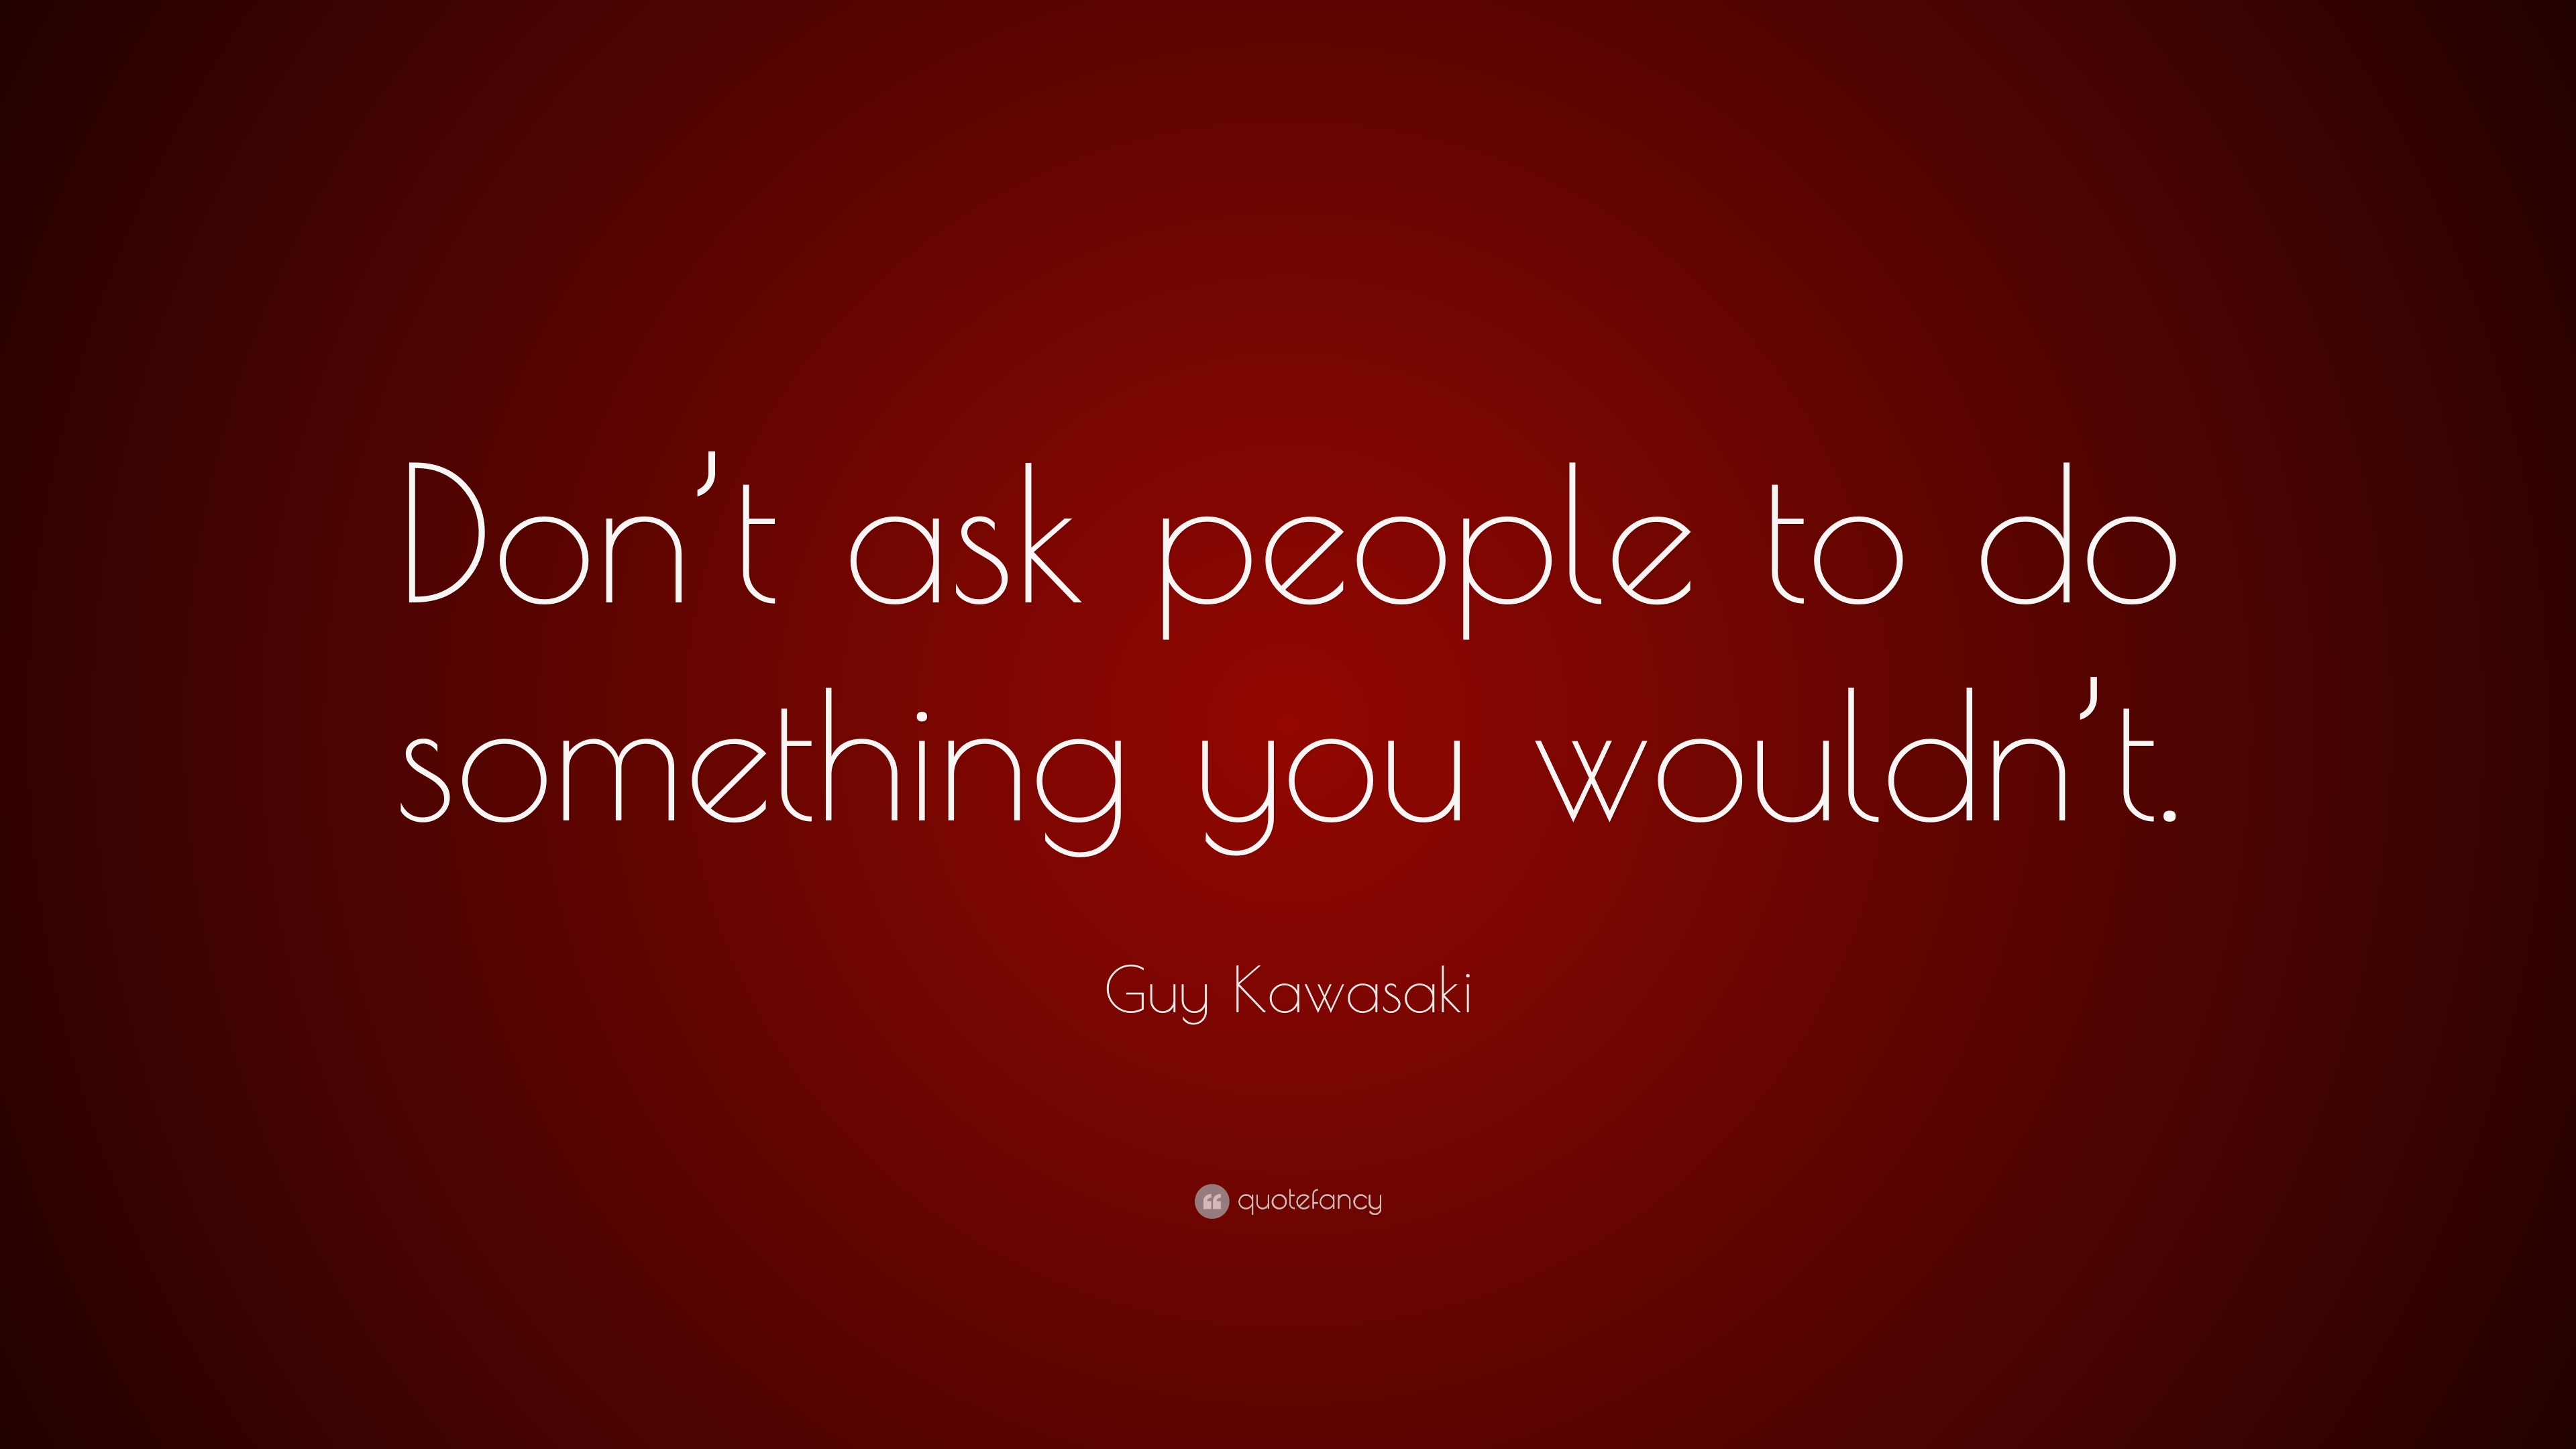 Guy Kawasaki Quotes (100 Wallpapers)